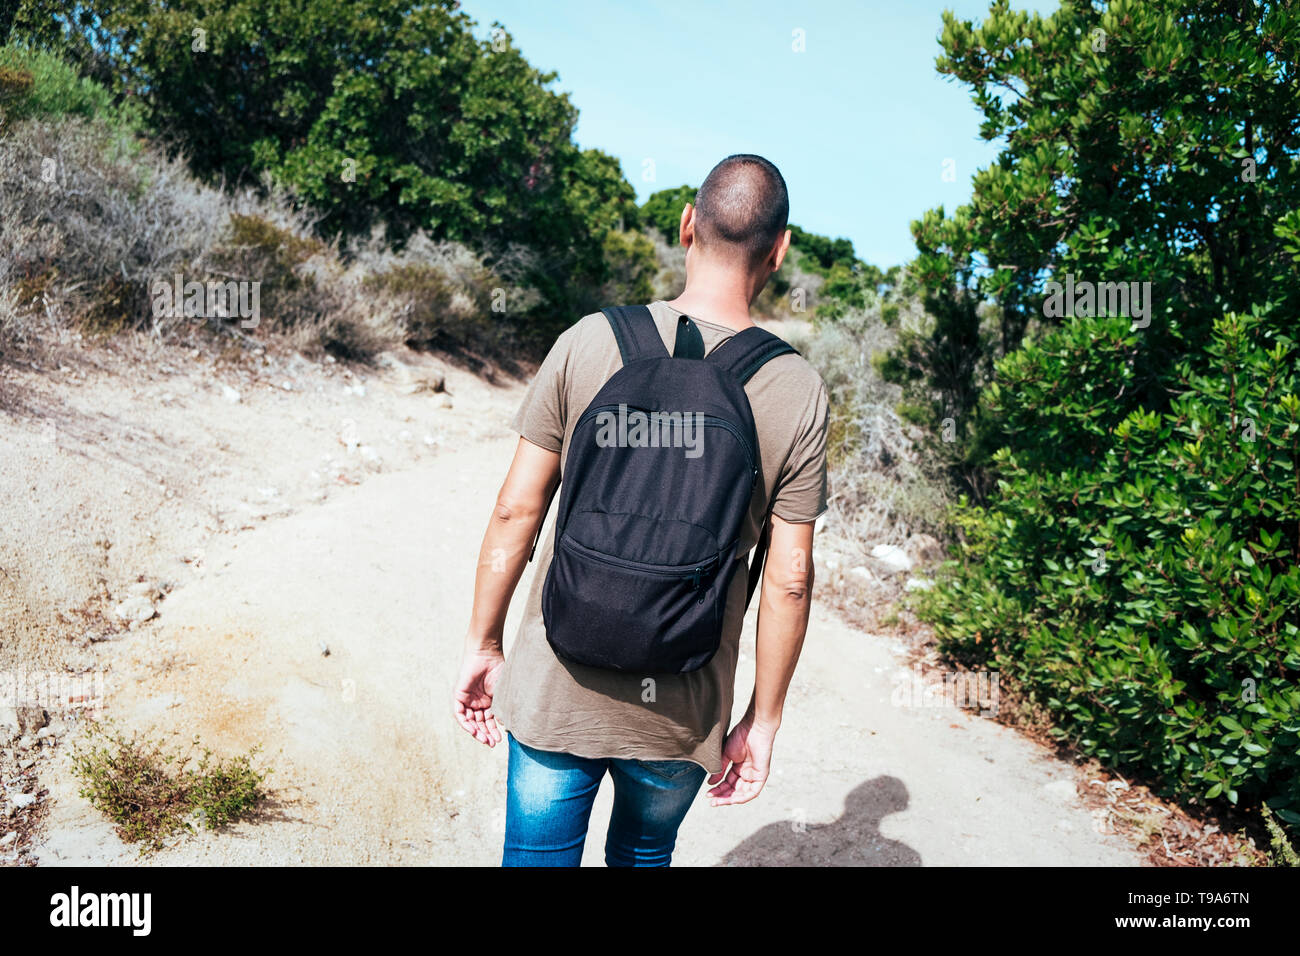 a young caucasian man wearing jeans and a green t-shirt, carrying a backpack, seen from behind, walking by a dirt road Stock Photo